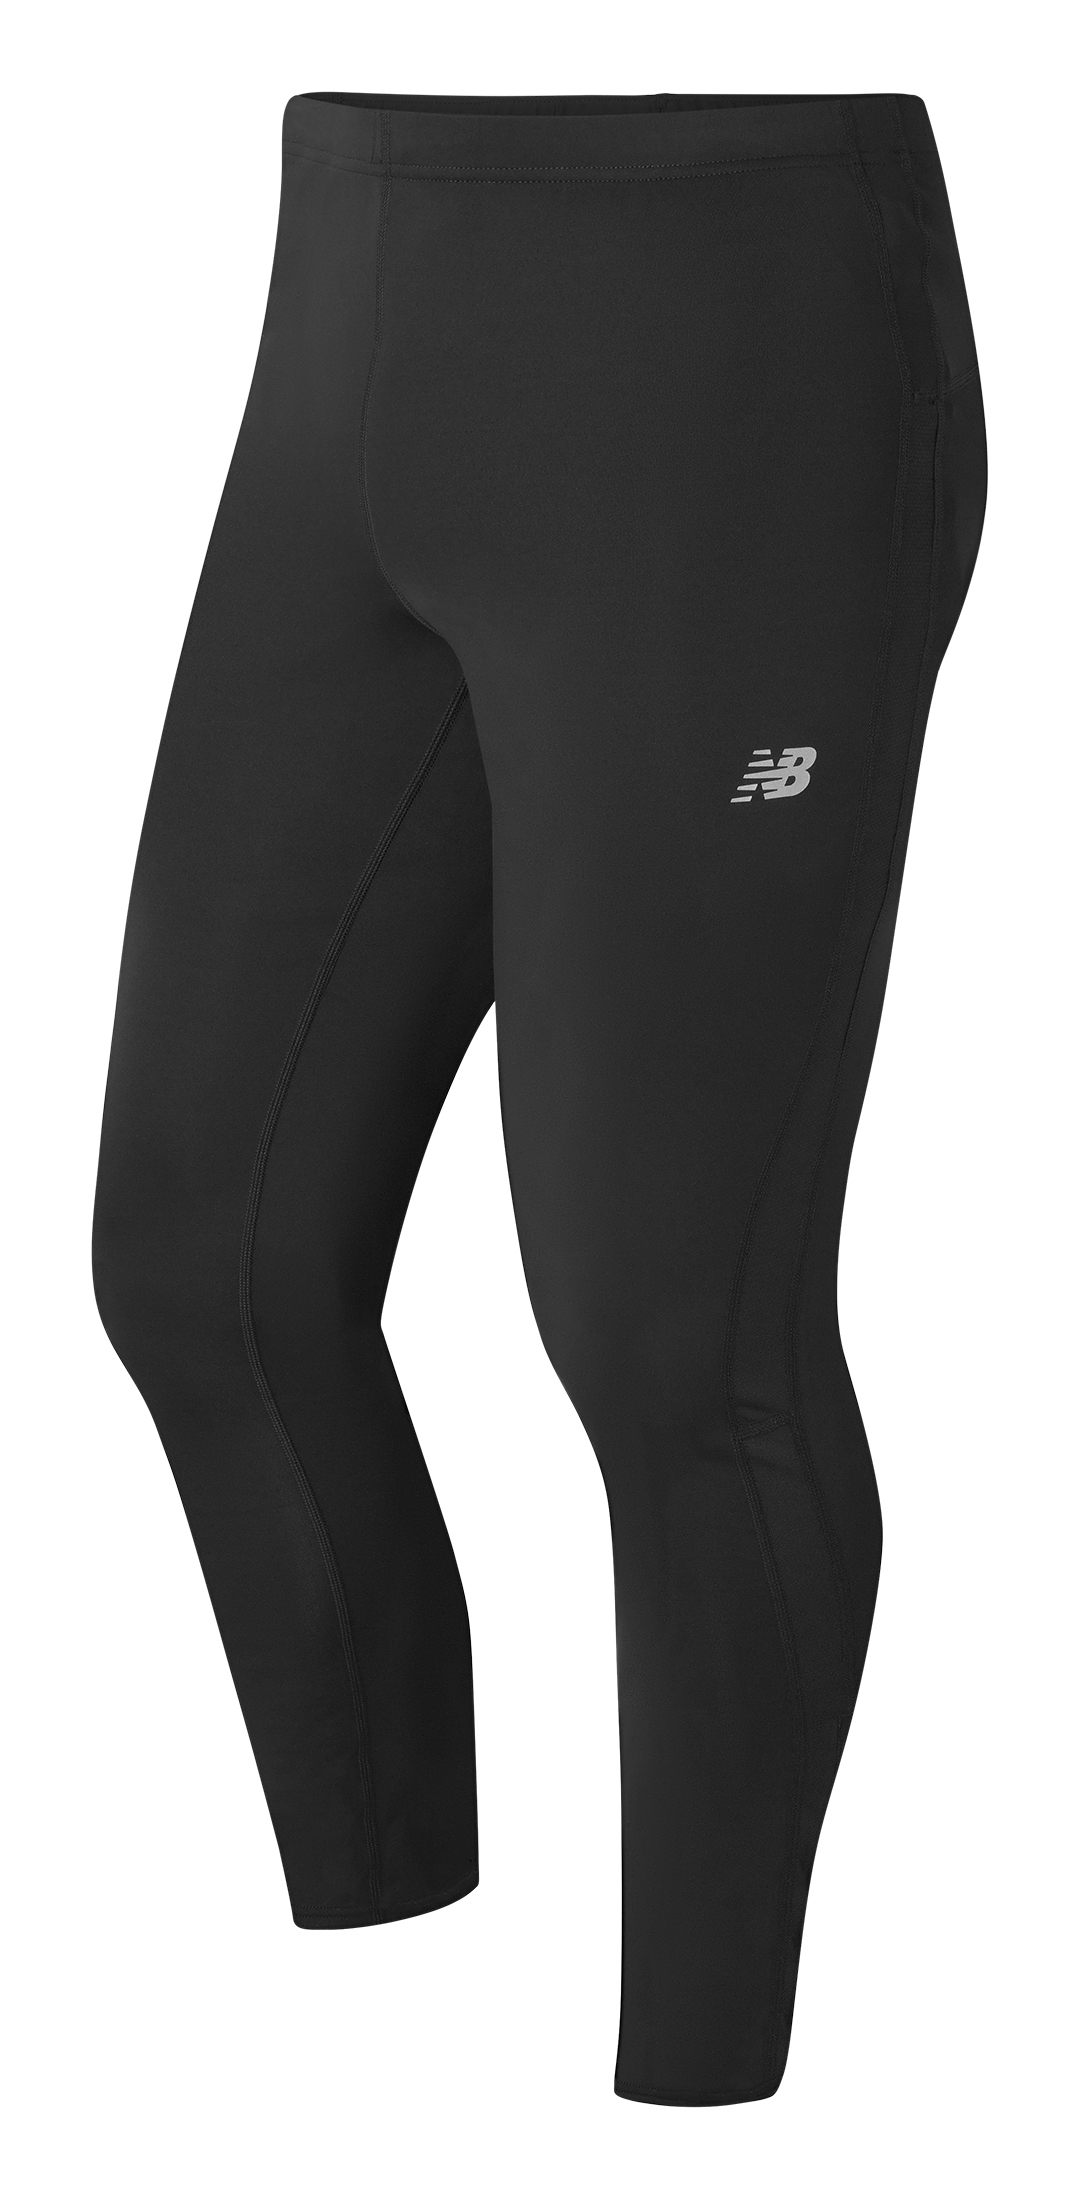 0139_accelerate-tight_MP53063_MD_BLK_Front copy.jpg